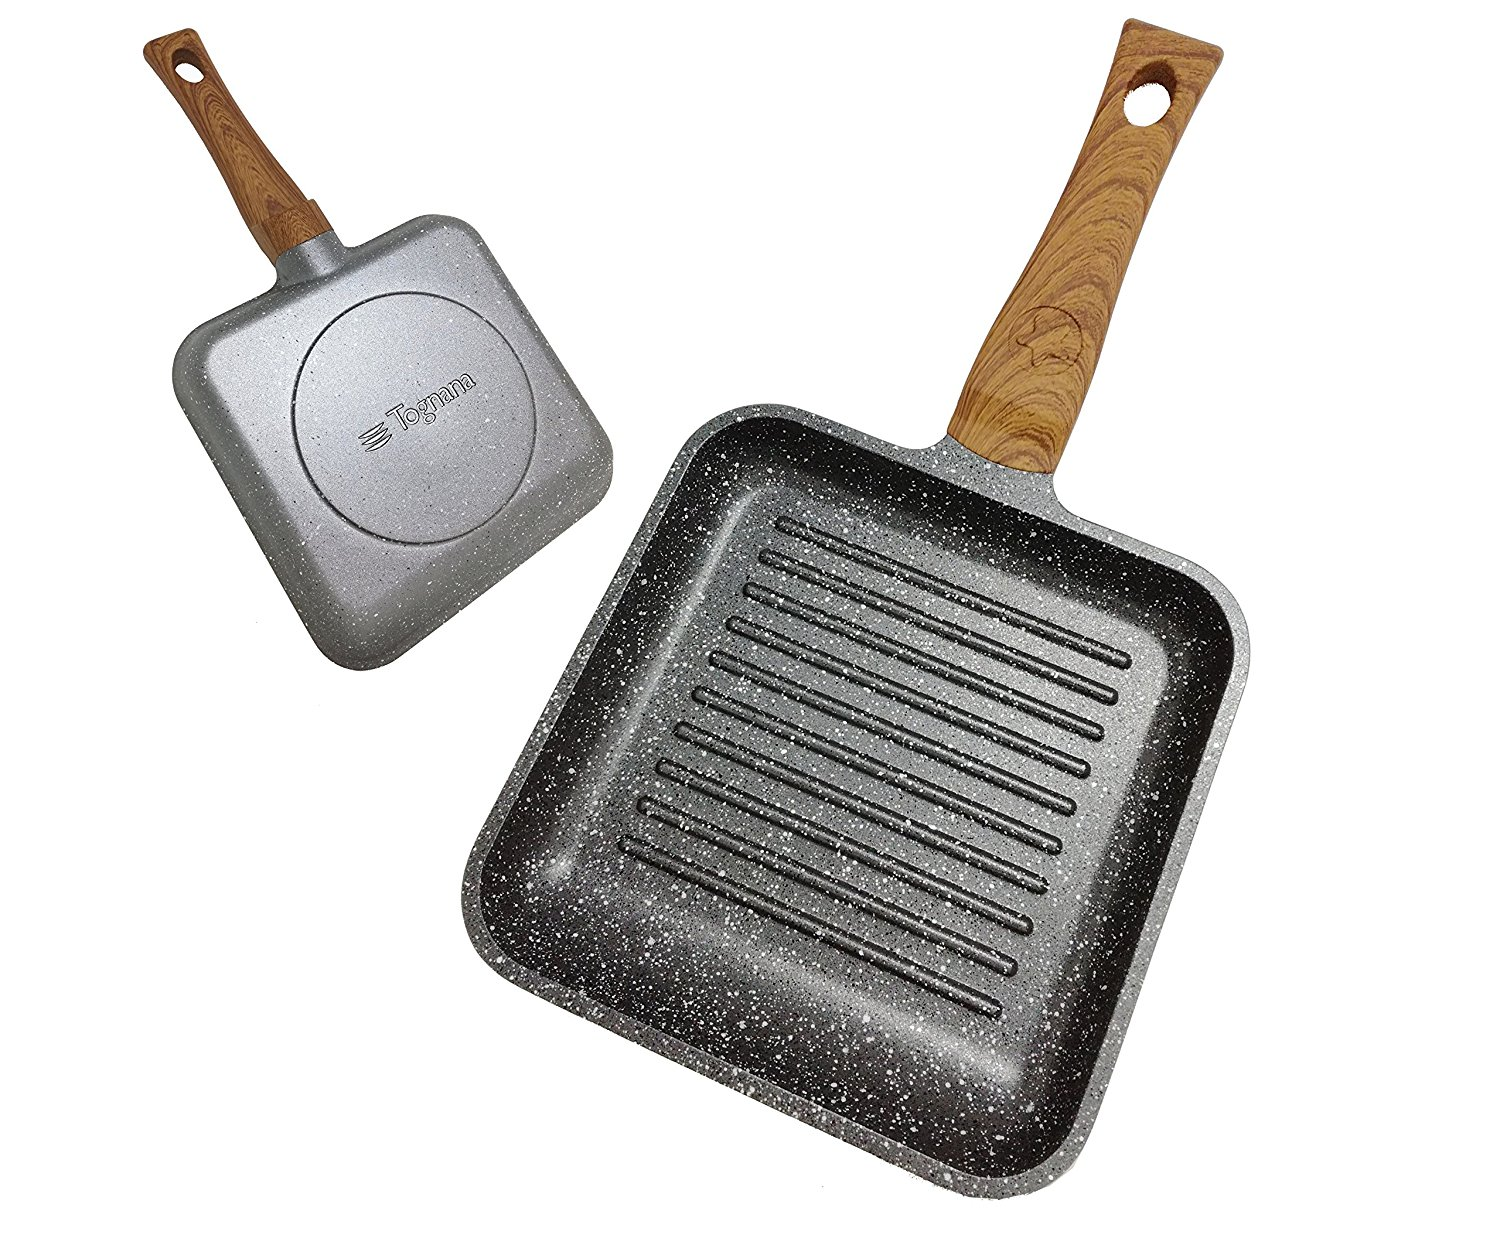 Mini Grill Tognana Stone and Wood 14 cm